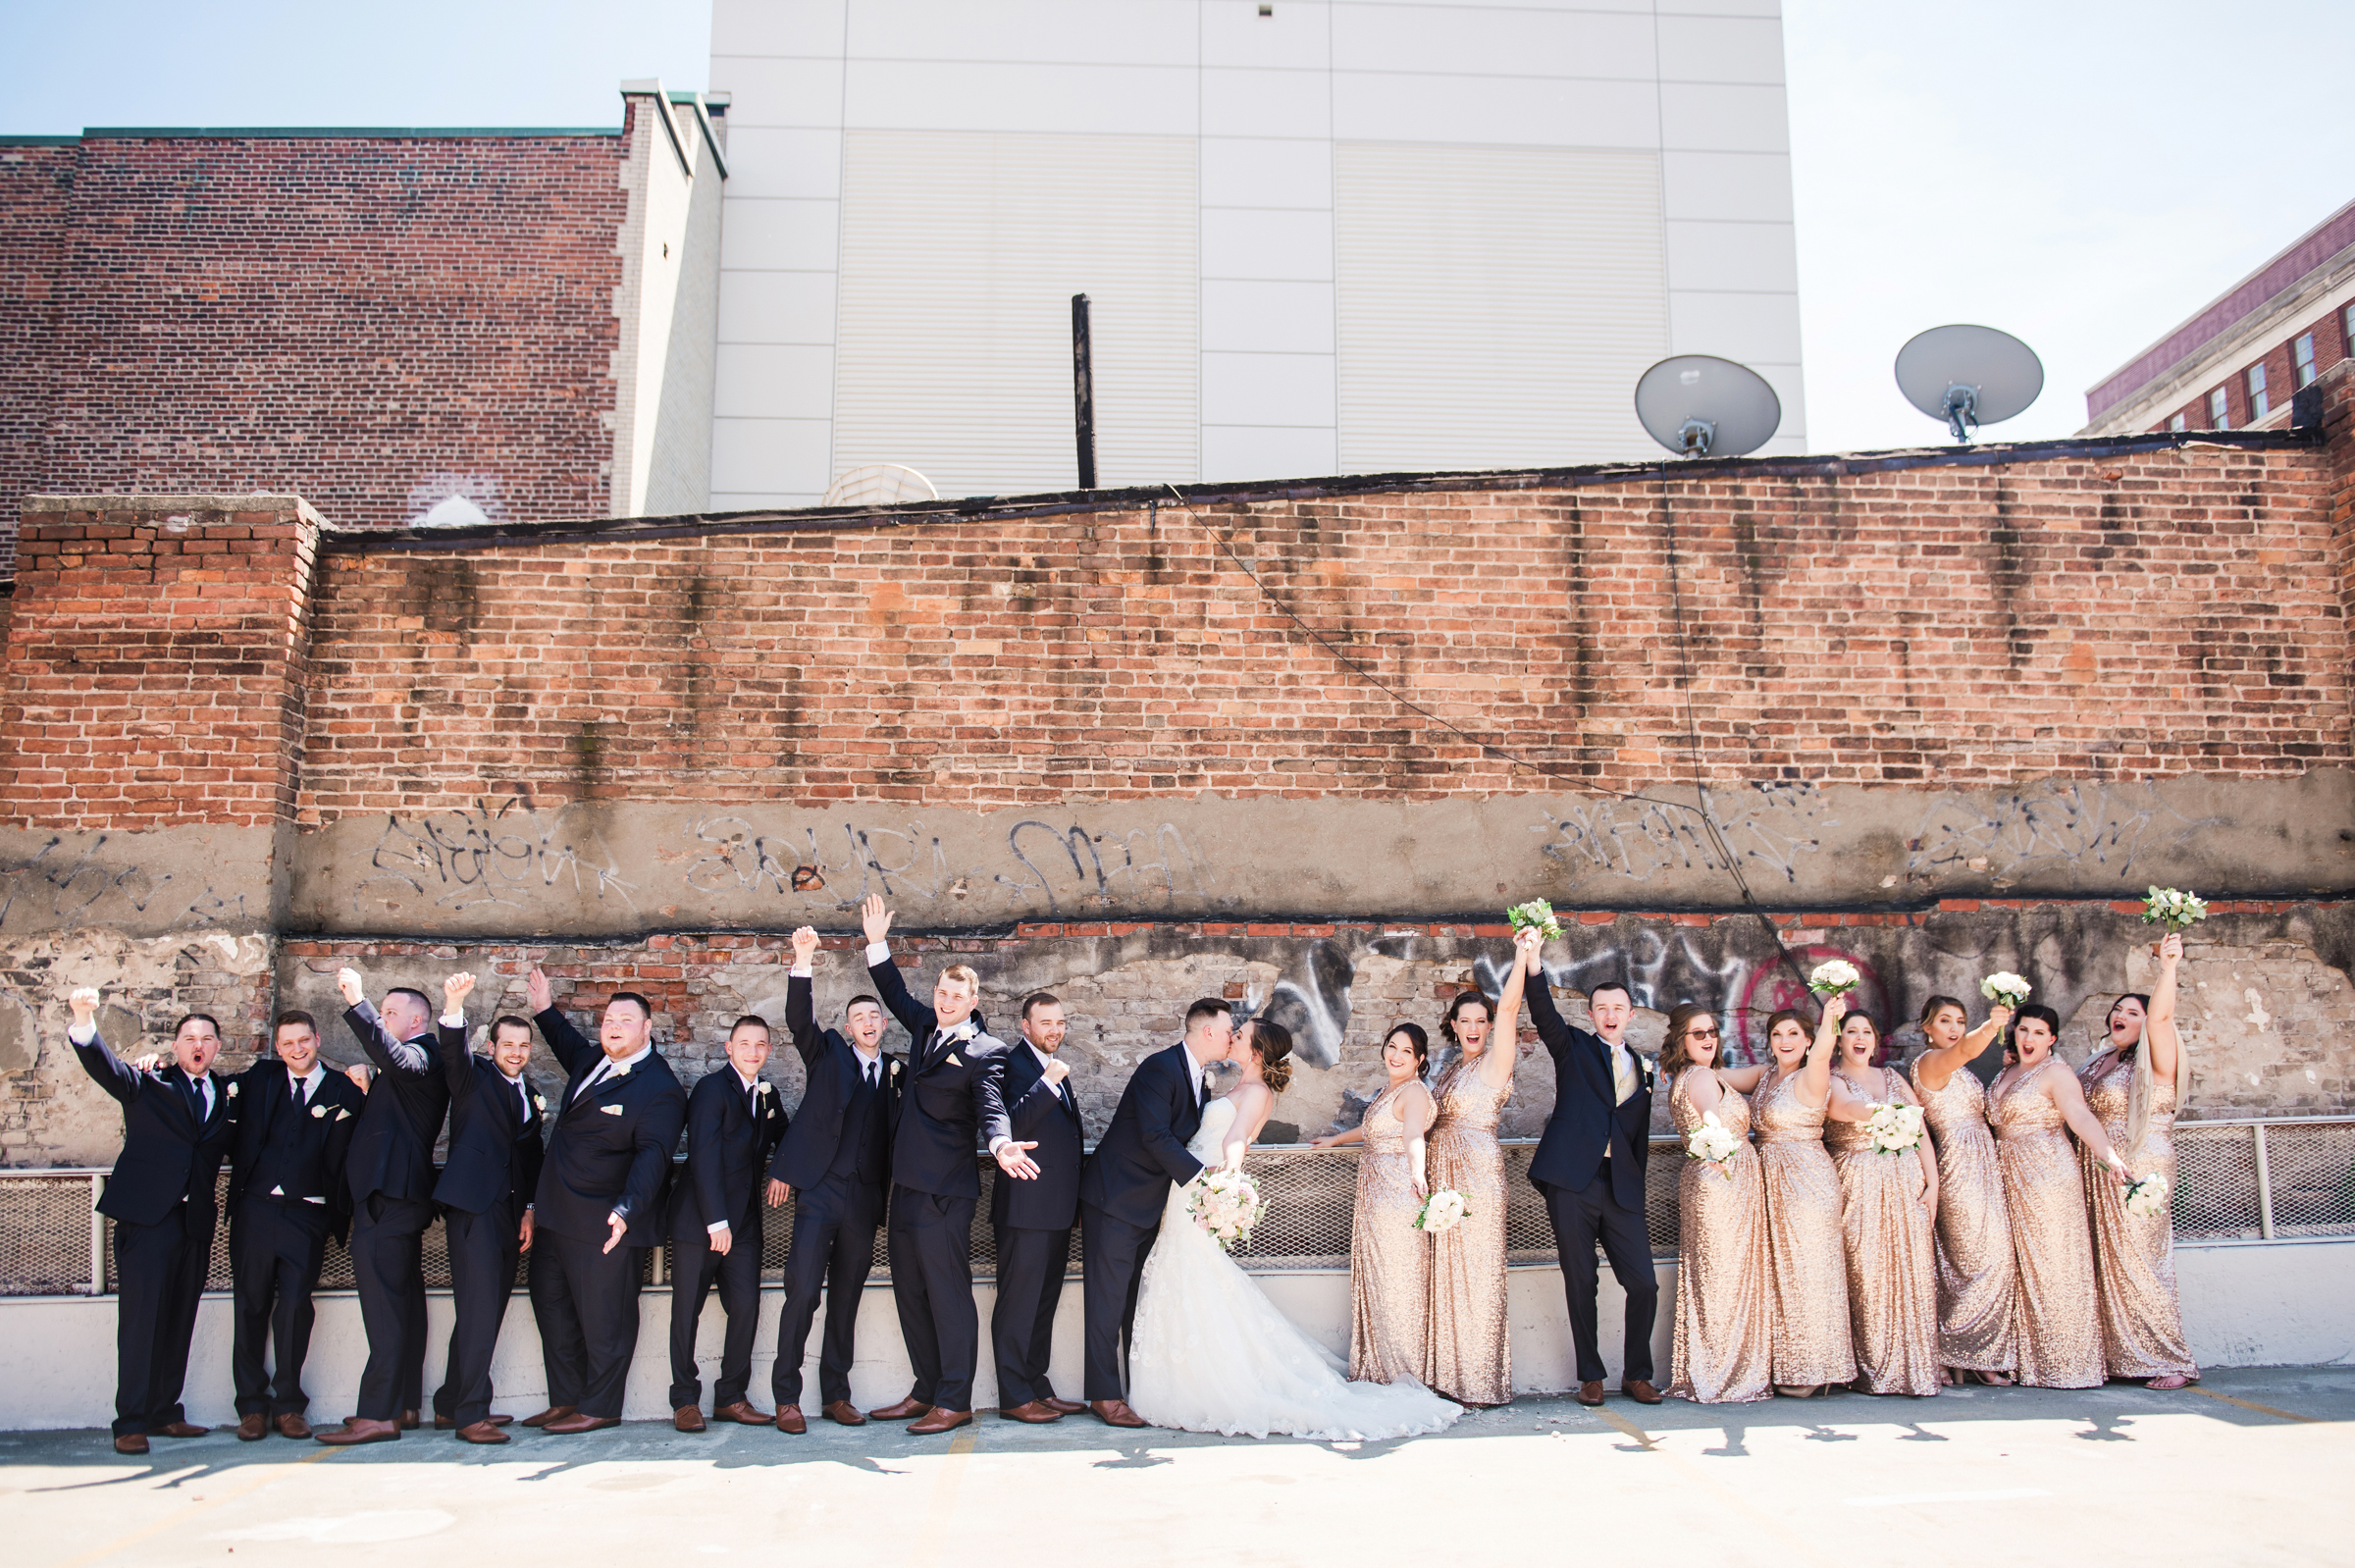 JILL_STUDIO_Wedding_JILL_STUDIO_Rochester_NY_Photographer_6-DSC_2308.jpg